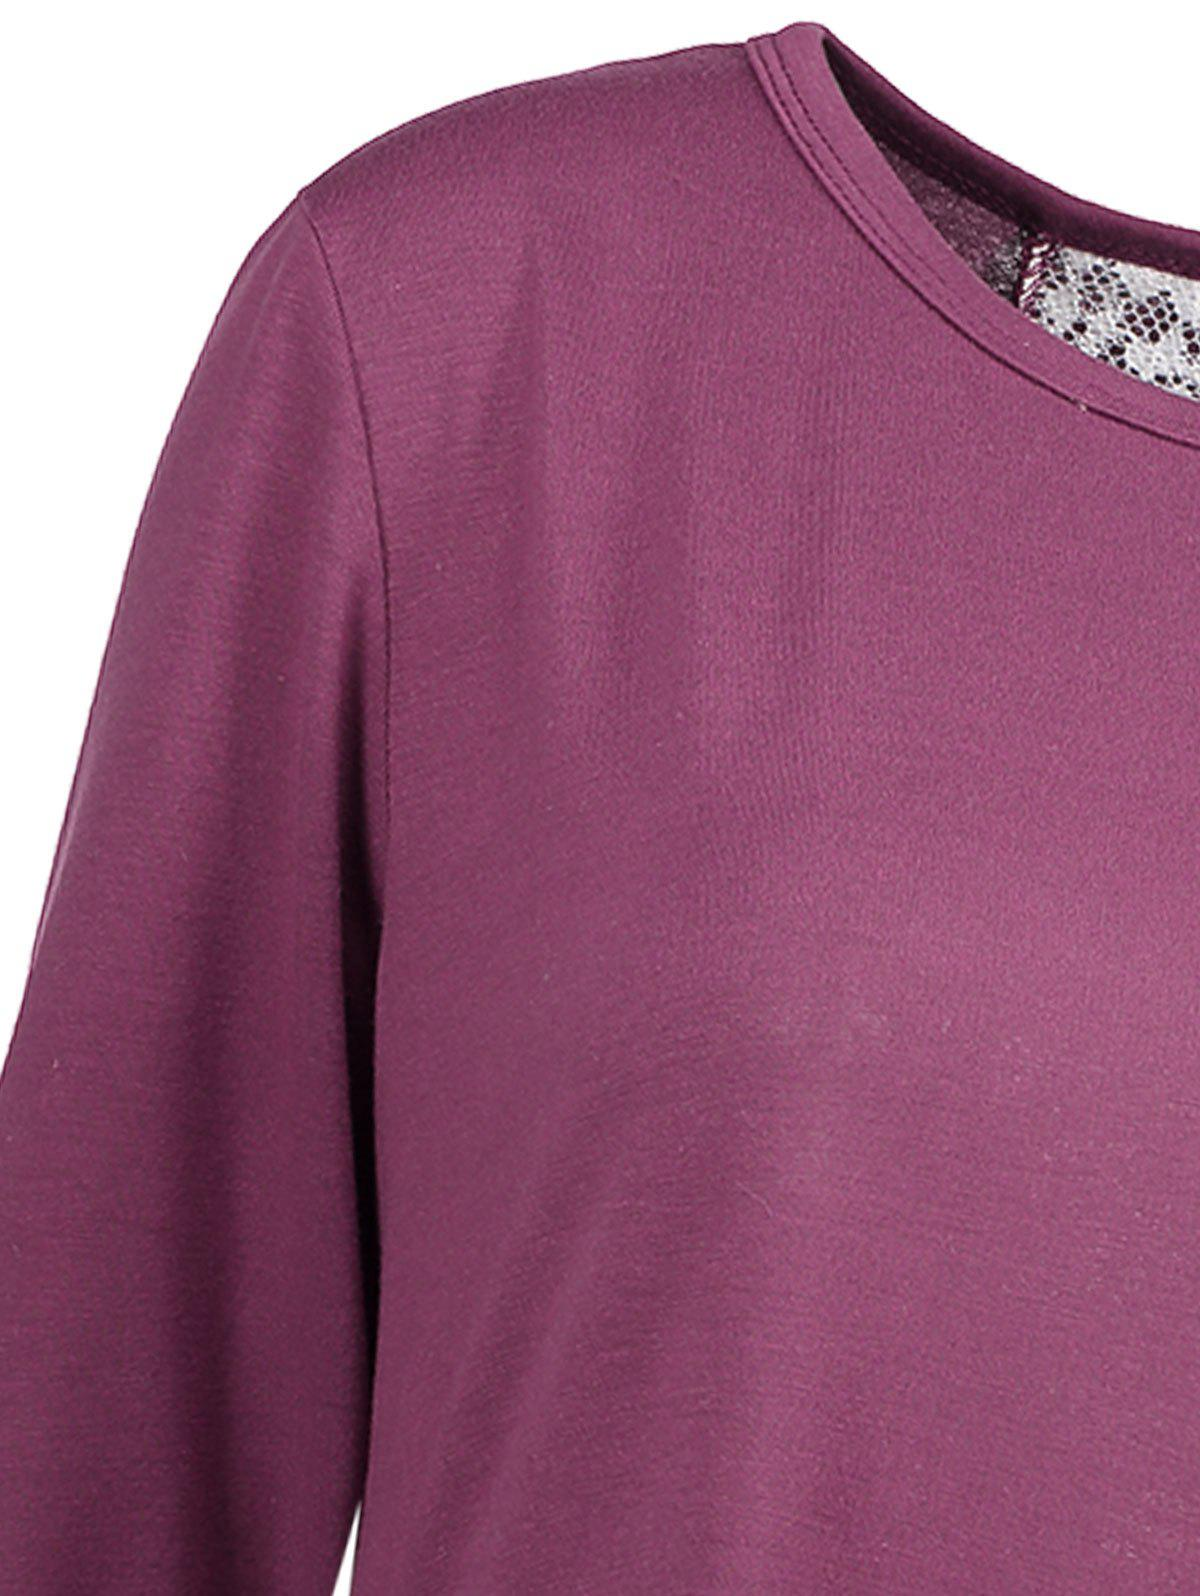 Hollow Out Ruffle Blouse - PURPLE XL